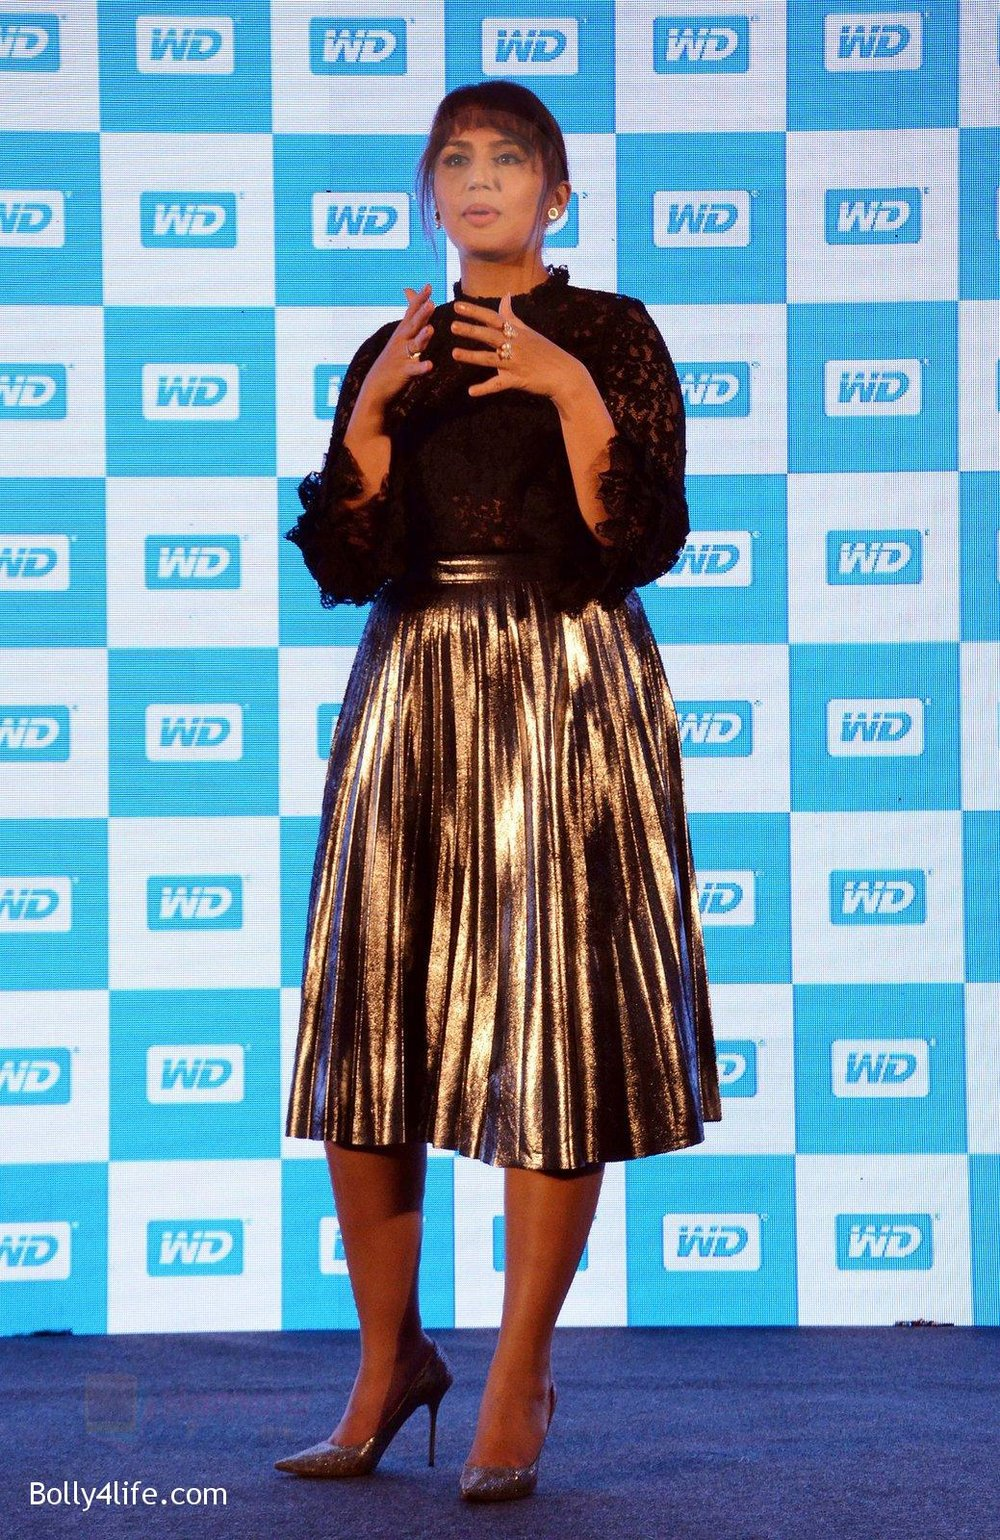 Huma-Qureshi-at-WD-launch-in-Delhi-on-19th-Oct-2016-16.jpg